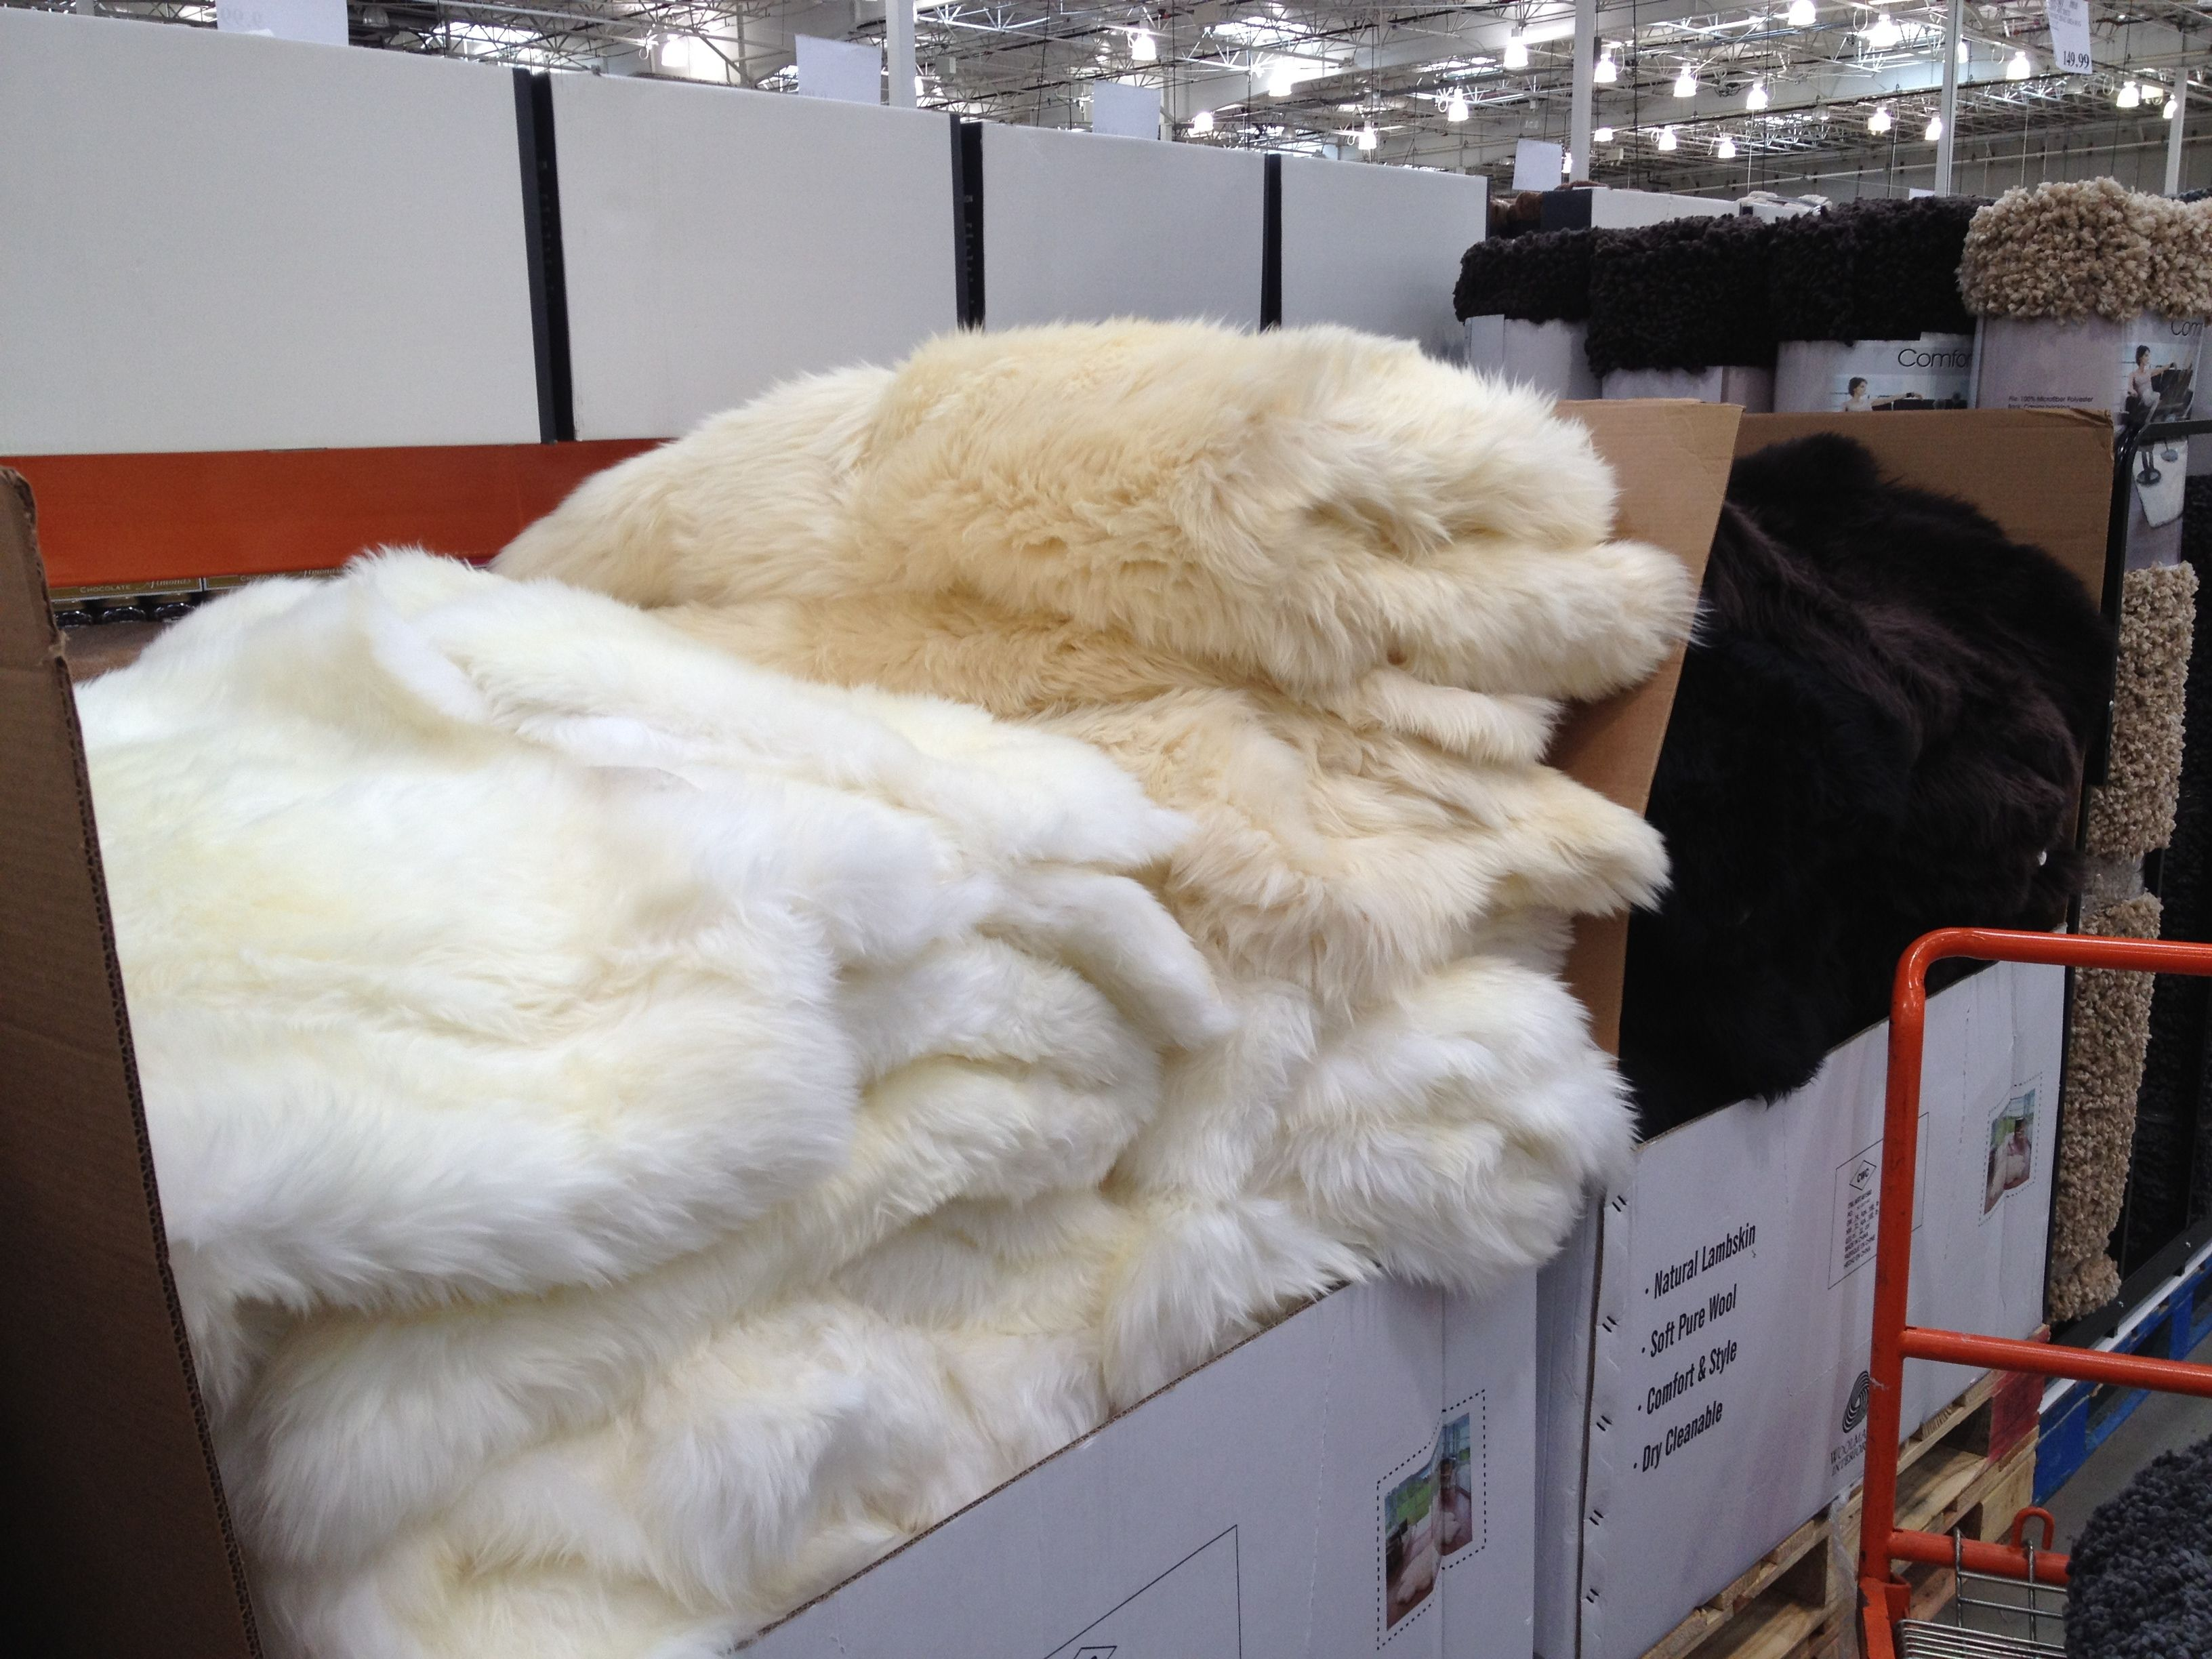 Costco Throw Blanket Amazing Pinpaul Rogers On Sheepskin  Pinterest  Fur Inspiration Design